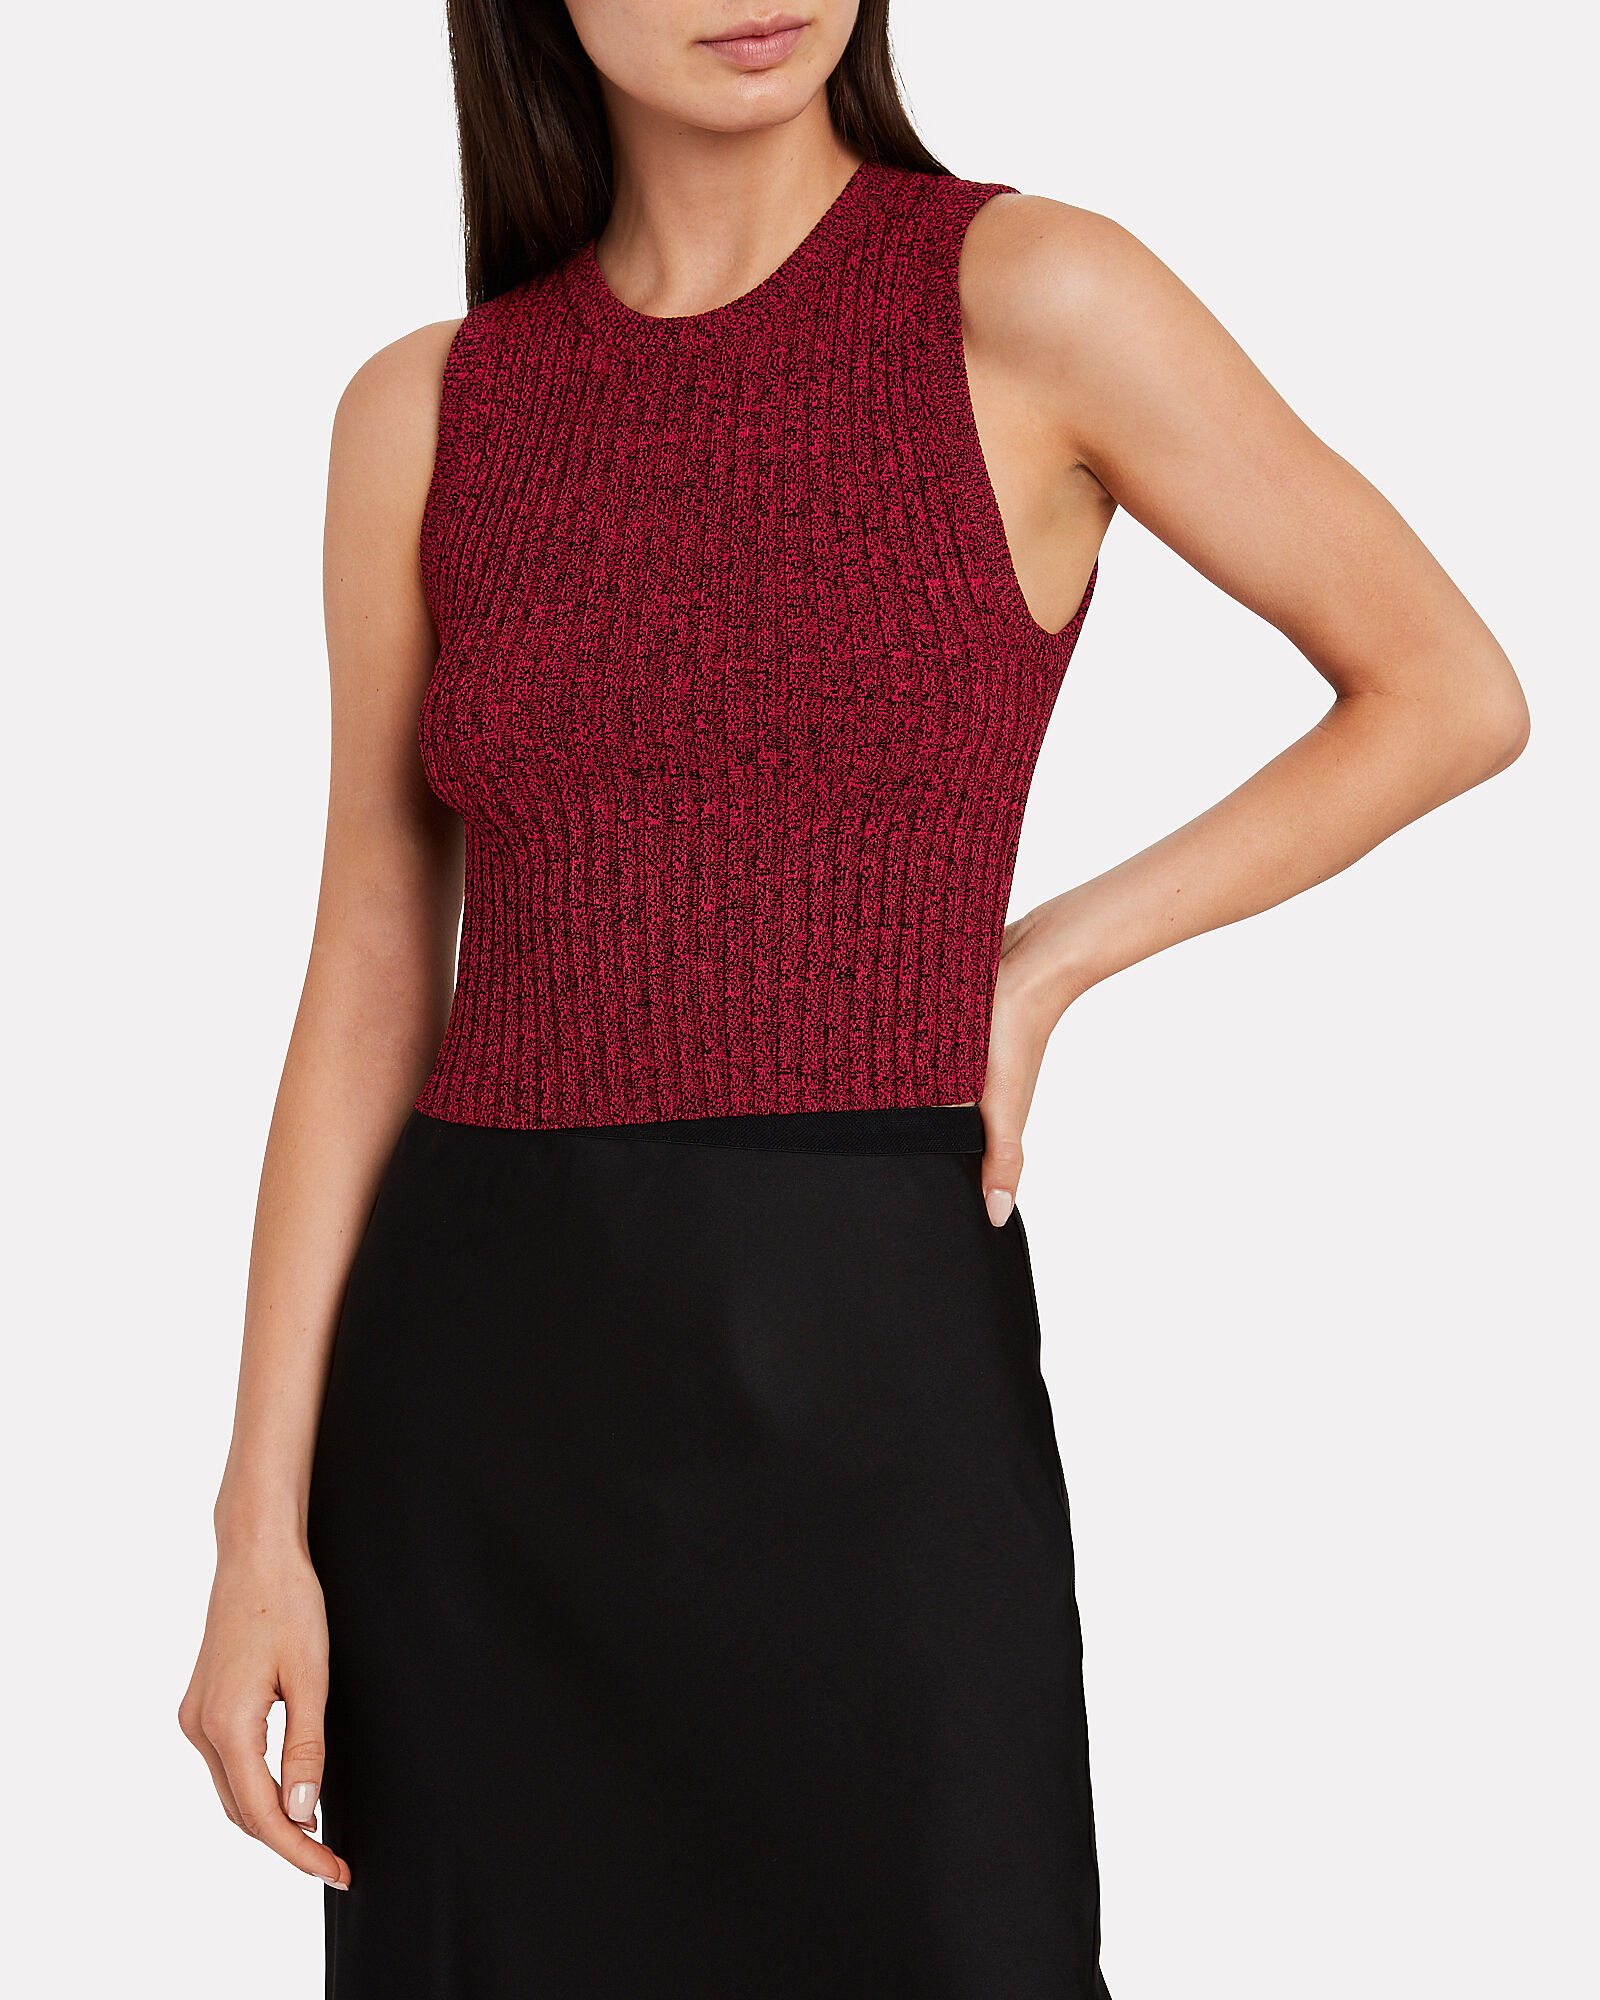 Marie Cropped Knit Tank Top, RED-DRK, hi-res